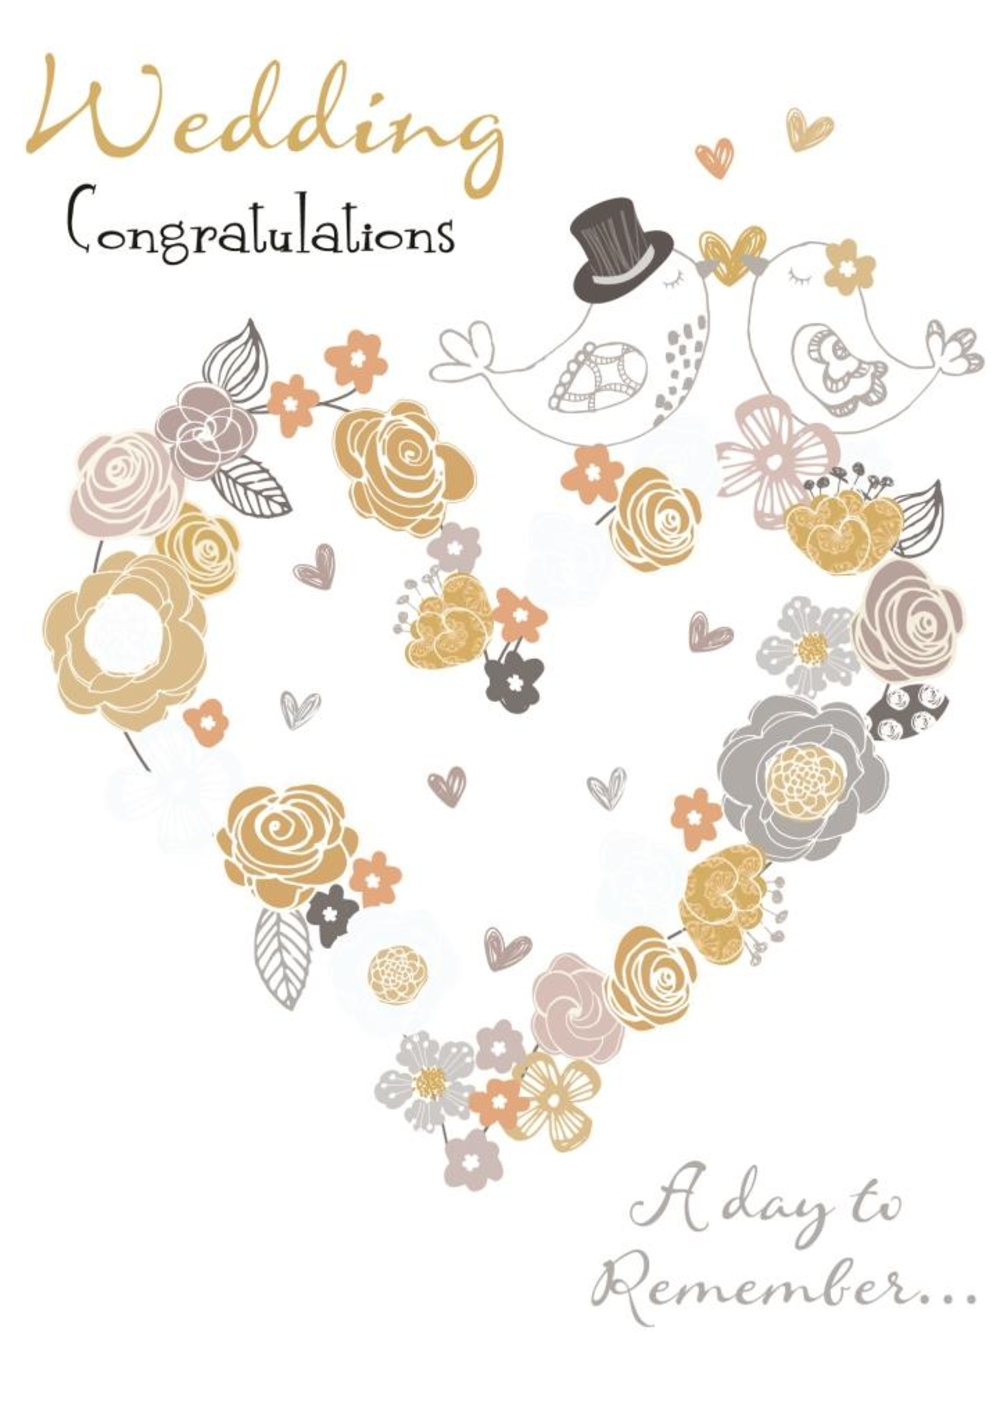 Wedding day congratulations greeting card cards love kates wedding day congratulations greeting card m4hsunfo